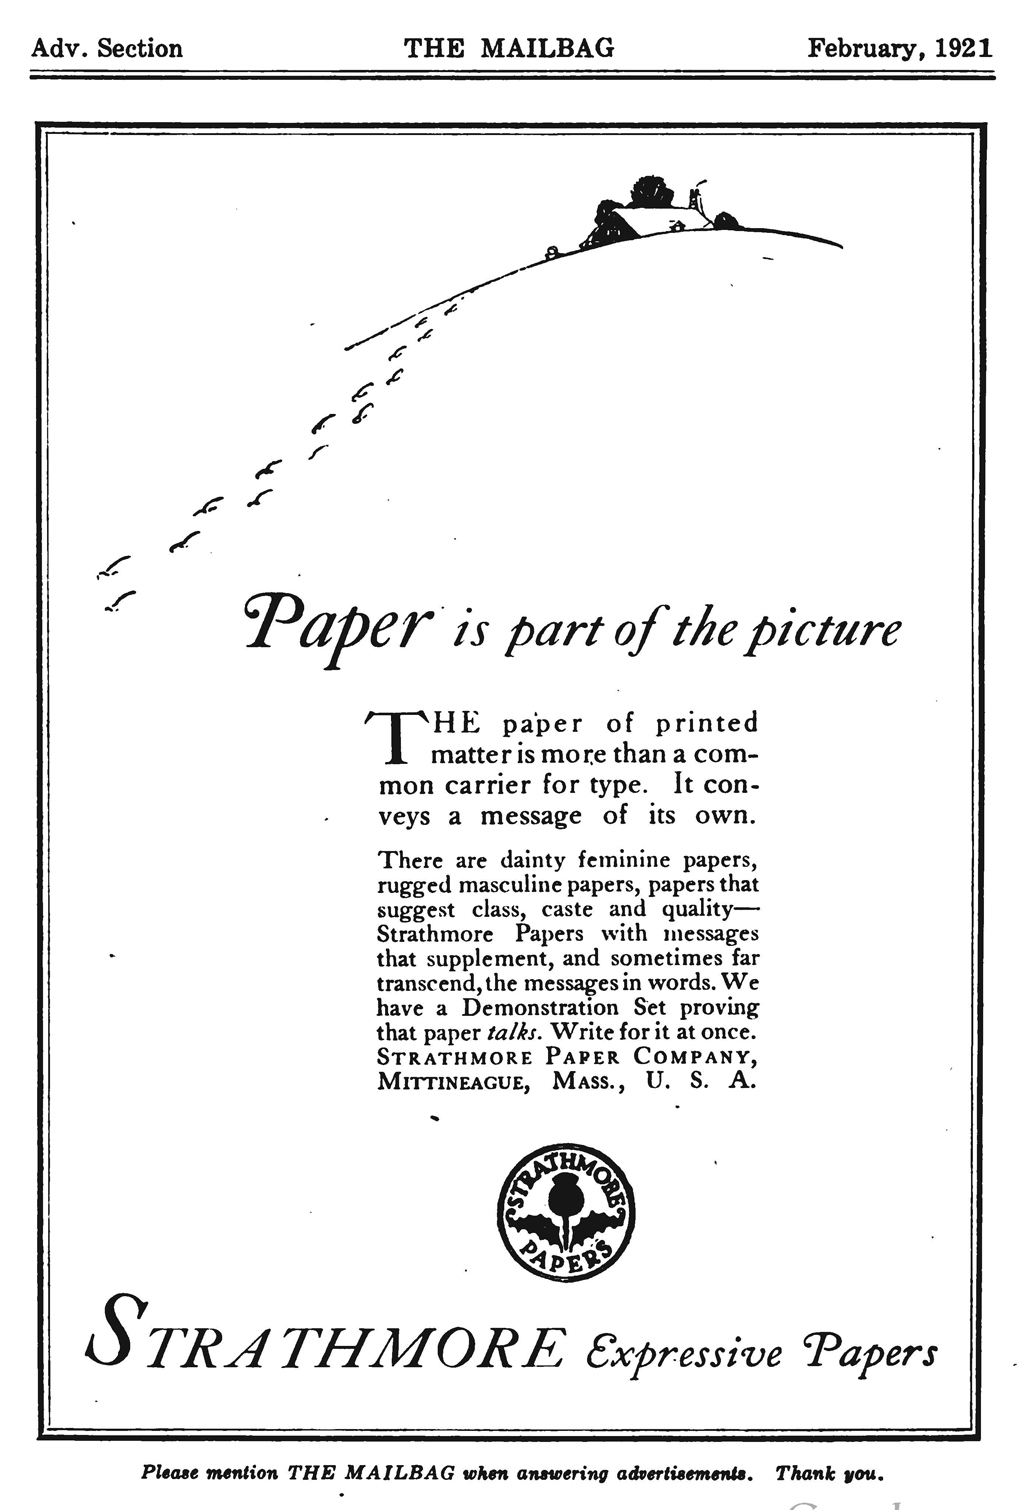 """Paper is part of the Picture"" advertisement in The Mailbag (February 1921)."